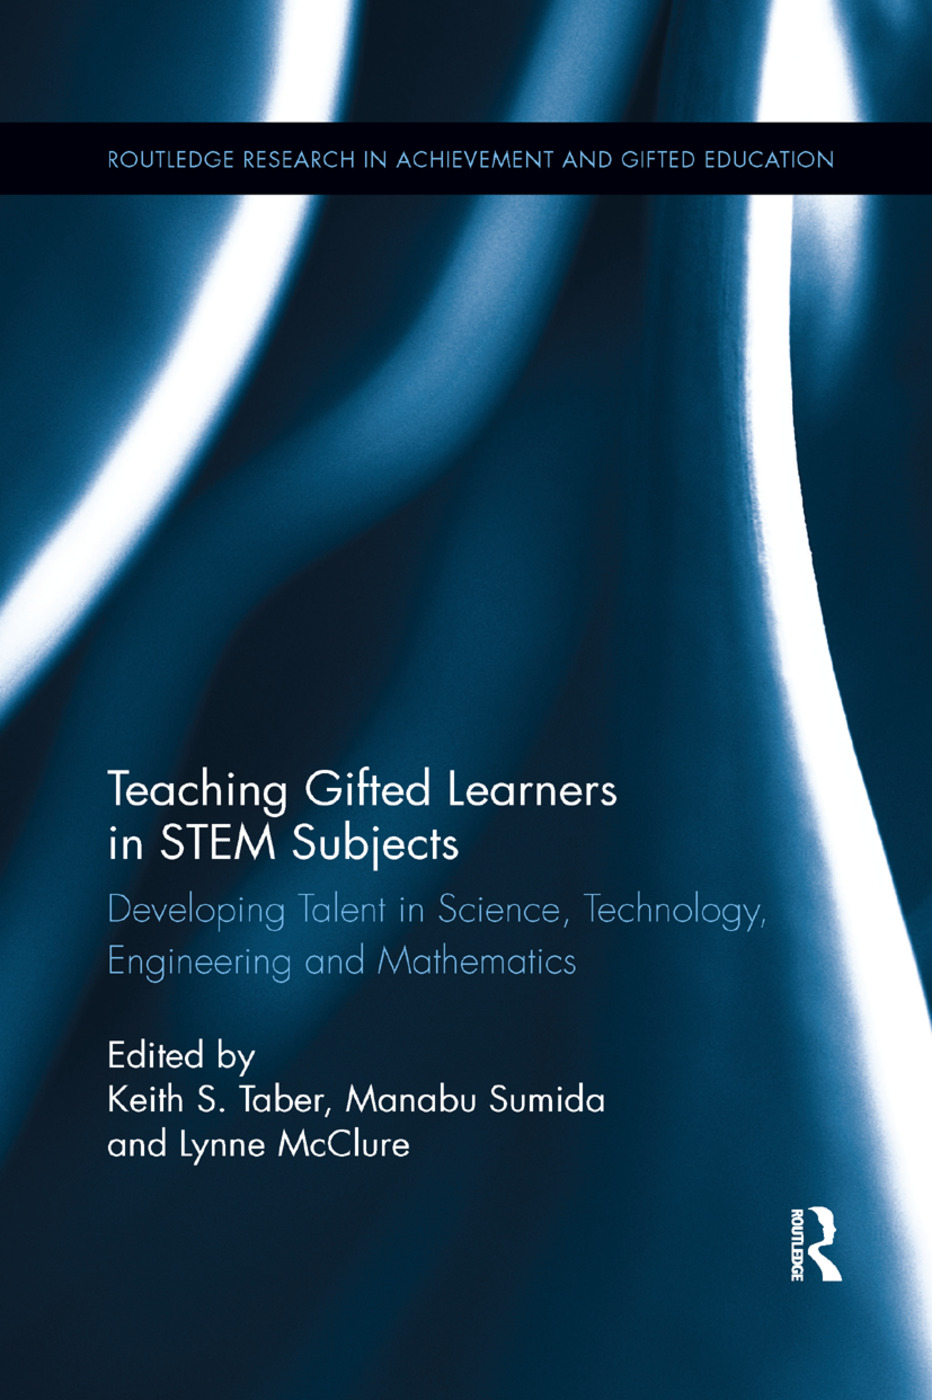 Teaching Gifted Learners in STEM Subjects: Developing Talent in Science, Technology, Engineering and Mathematics book cover